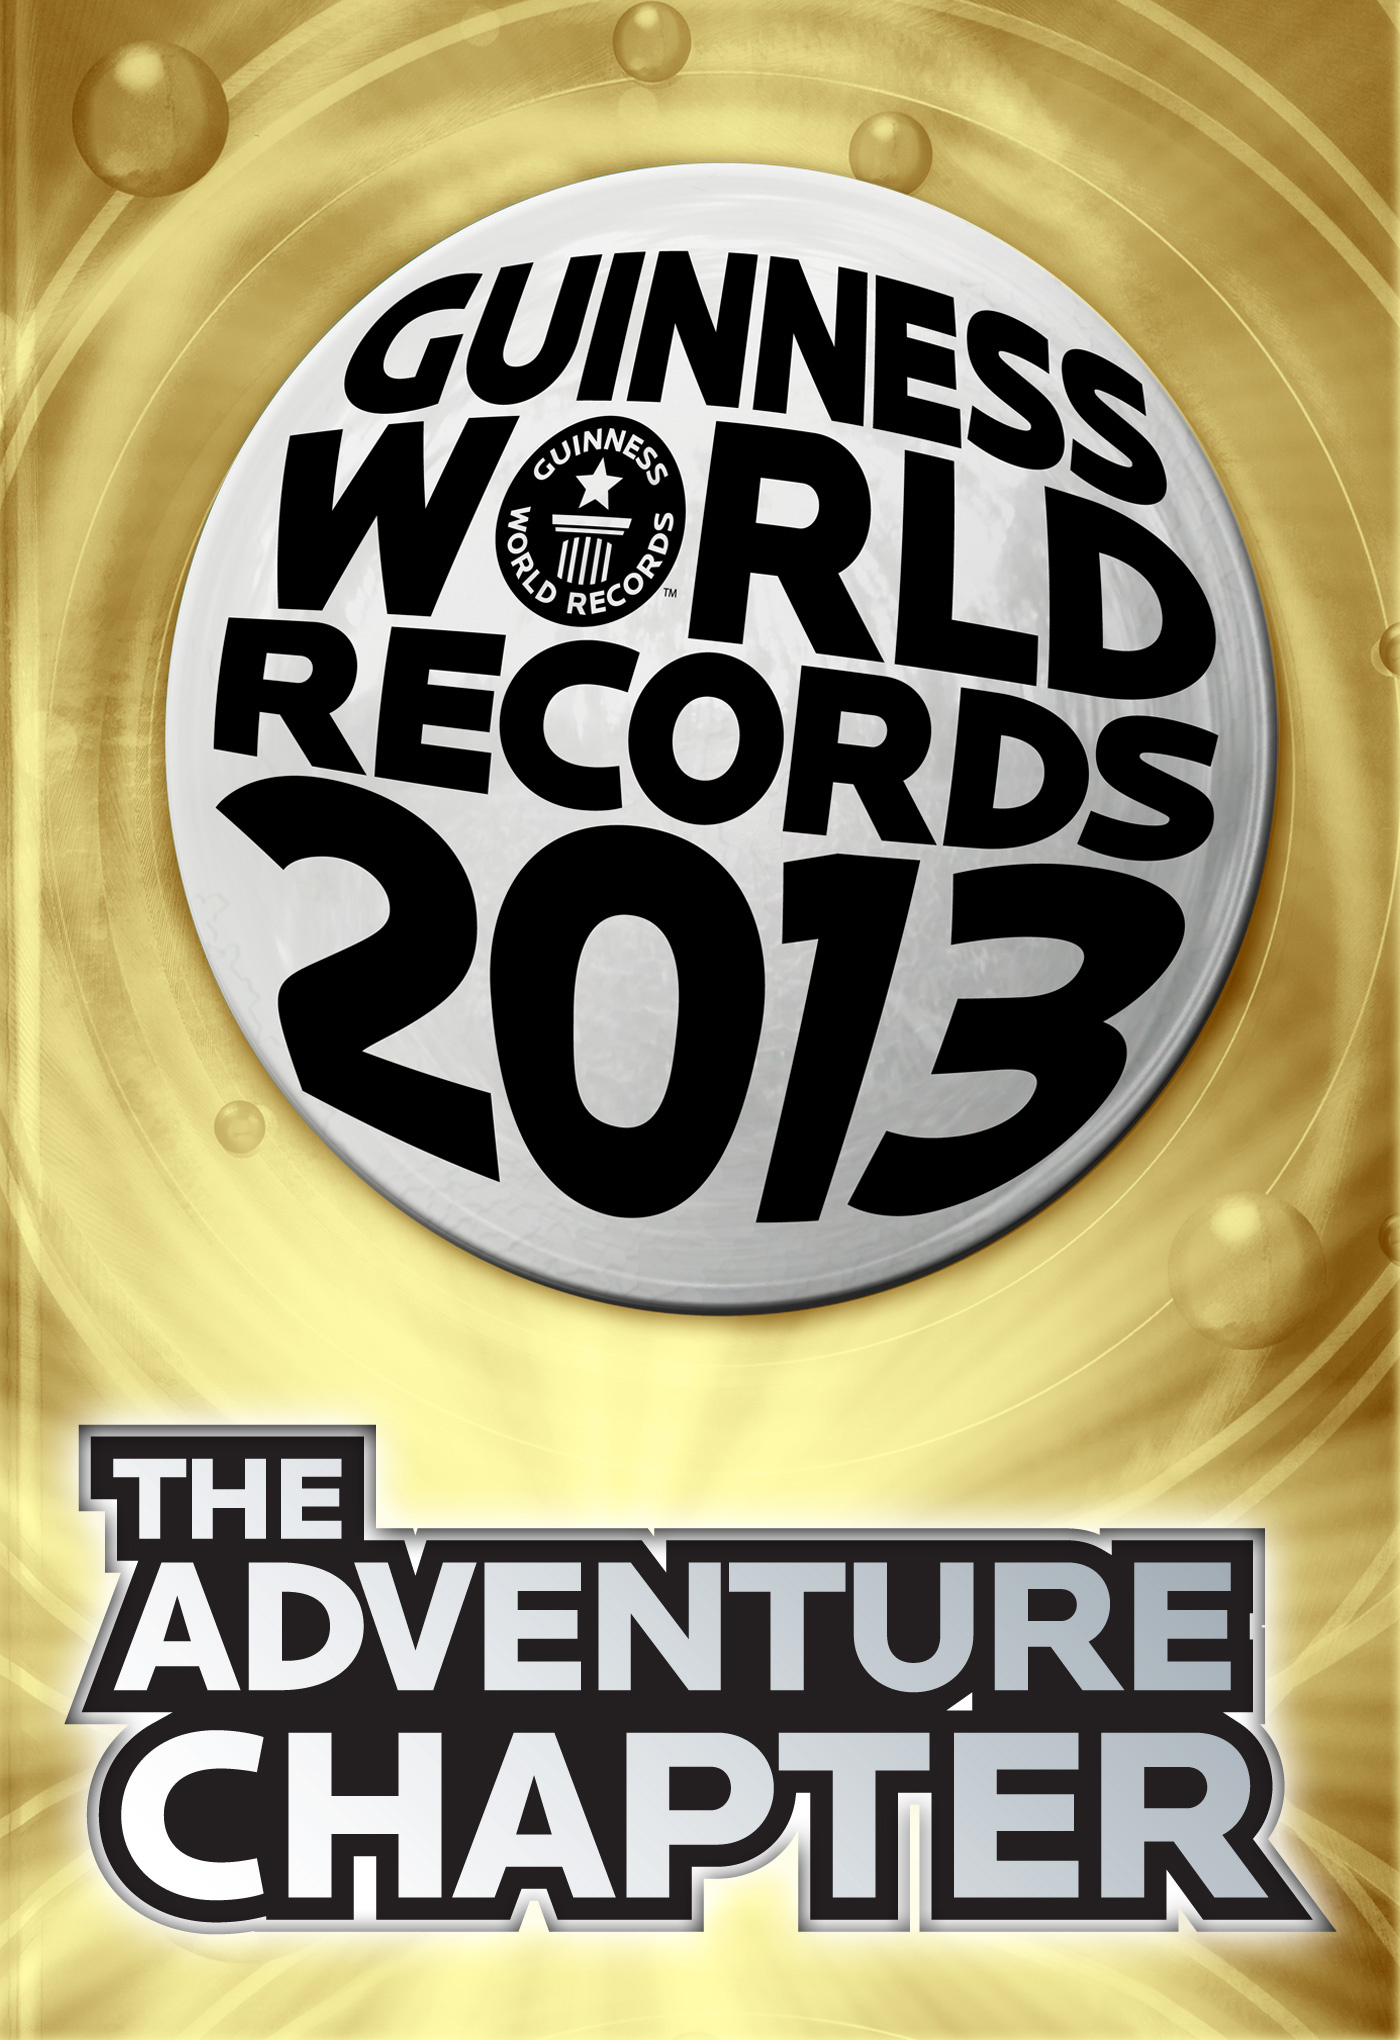 Guinness World Records 2013 - The Adventure Chapter